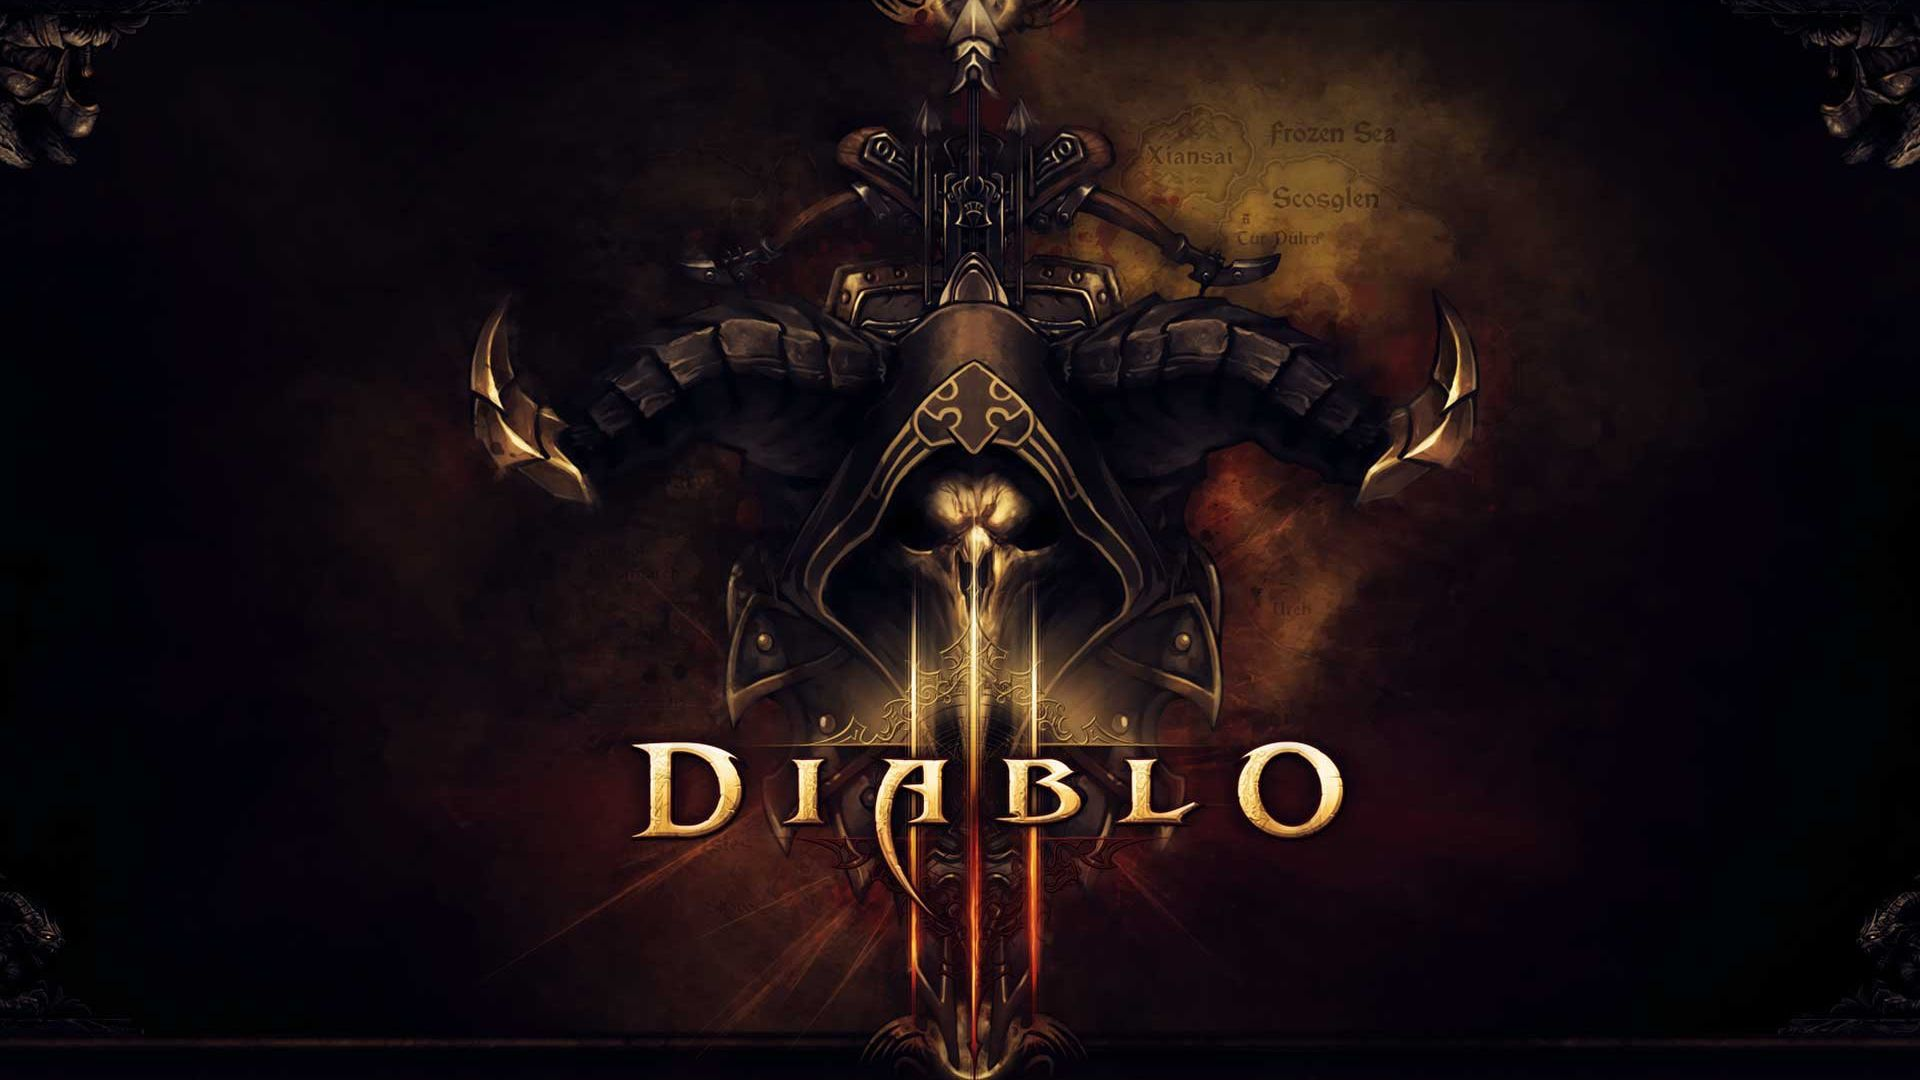 Diablo 3 Demon Hunter Artwork | Full HD Desktop Wallpapers ...